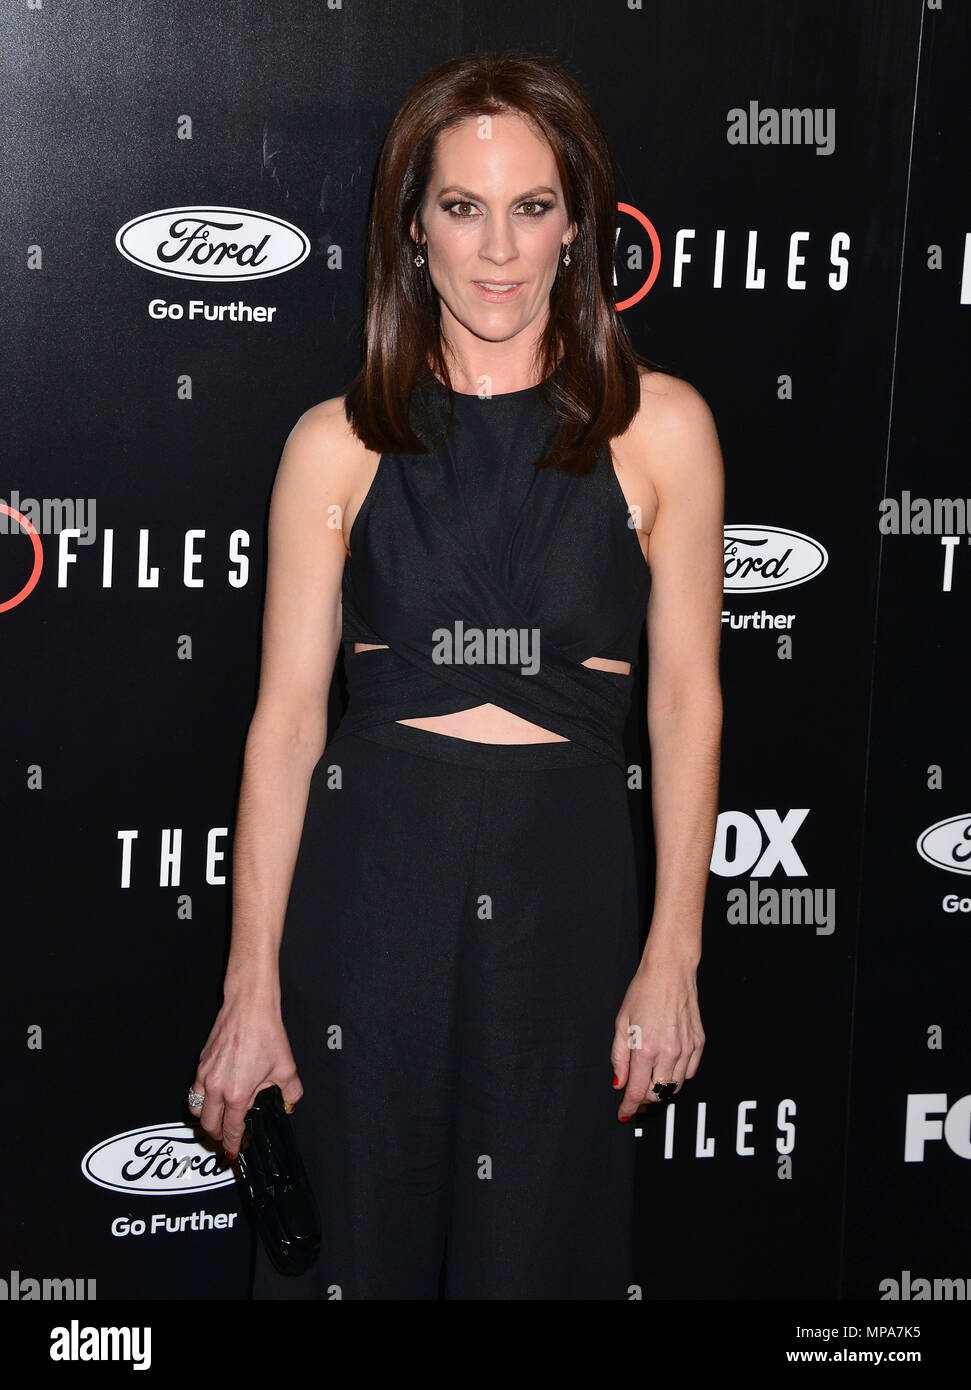 Annabeth Gish 047  at The X-Files Premiere at California Science Center in Los Angeles, CA  January 12, 2016.Annabeth Gish 047 ------------- Red Carpet Event, Vertical, USA, Film Industry, Celebrities,  Photography, Bestof, Arts Culture and Entertainment, Topix Celebrities fashion /  Vertical, Best of, Event in Hollywood Life - California,  Red Carpet and backstage, USA, Film Industry, Celebrities,  movie celebrities, TV celebrities, Music celebrities, Photography, Bestof, Arts Culture and Entertainment,  Topix, Three Quarters, vertical, one person,, from the year , 2016, inquiry tsuni@Gamma-U - Stock Image